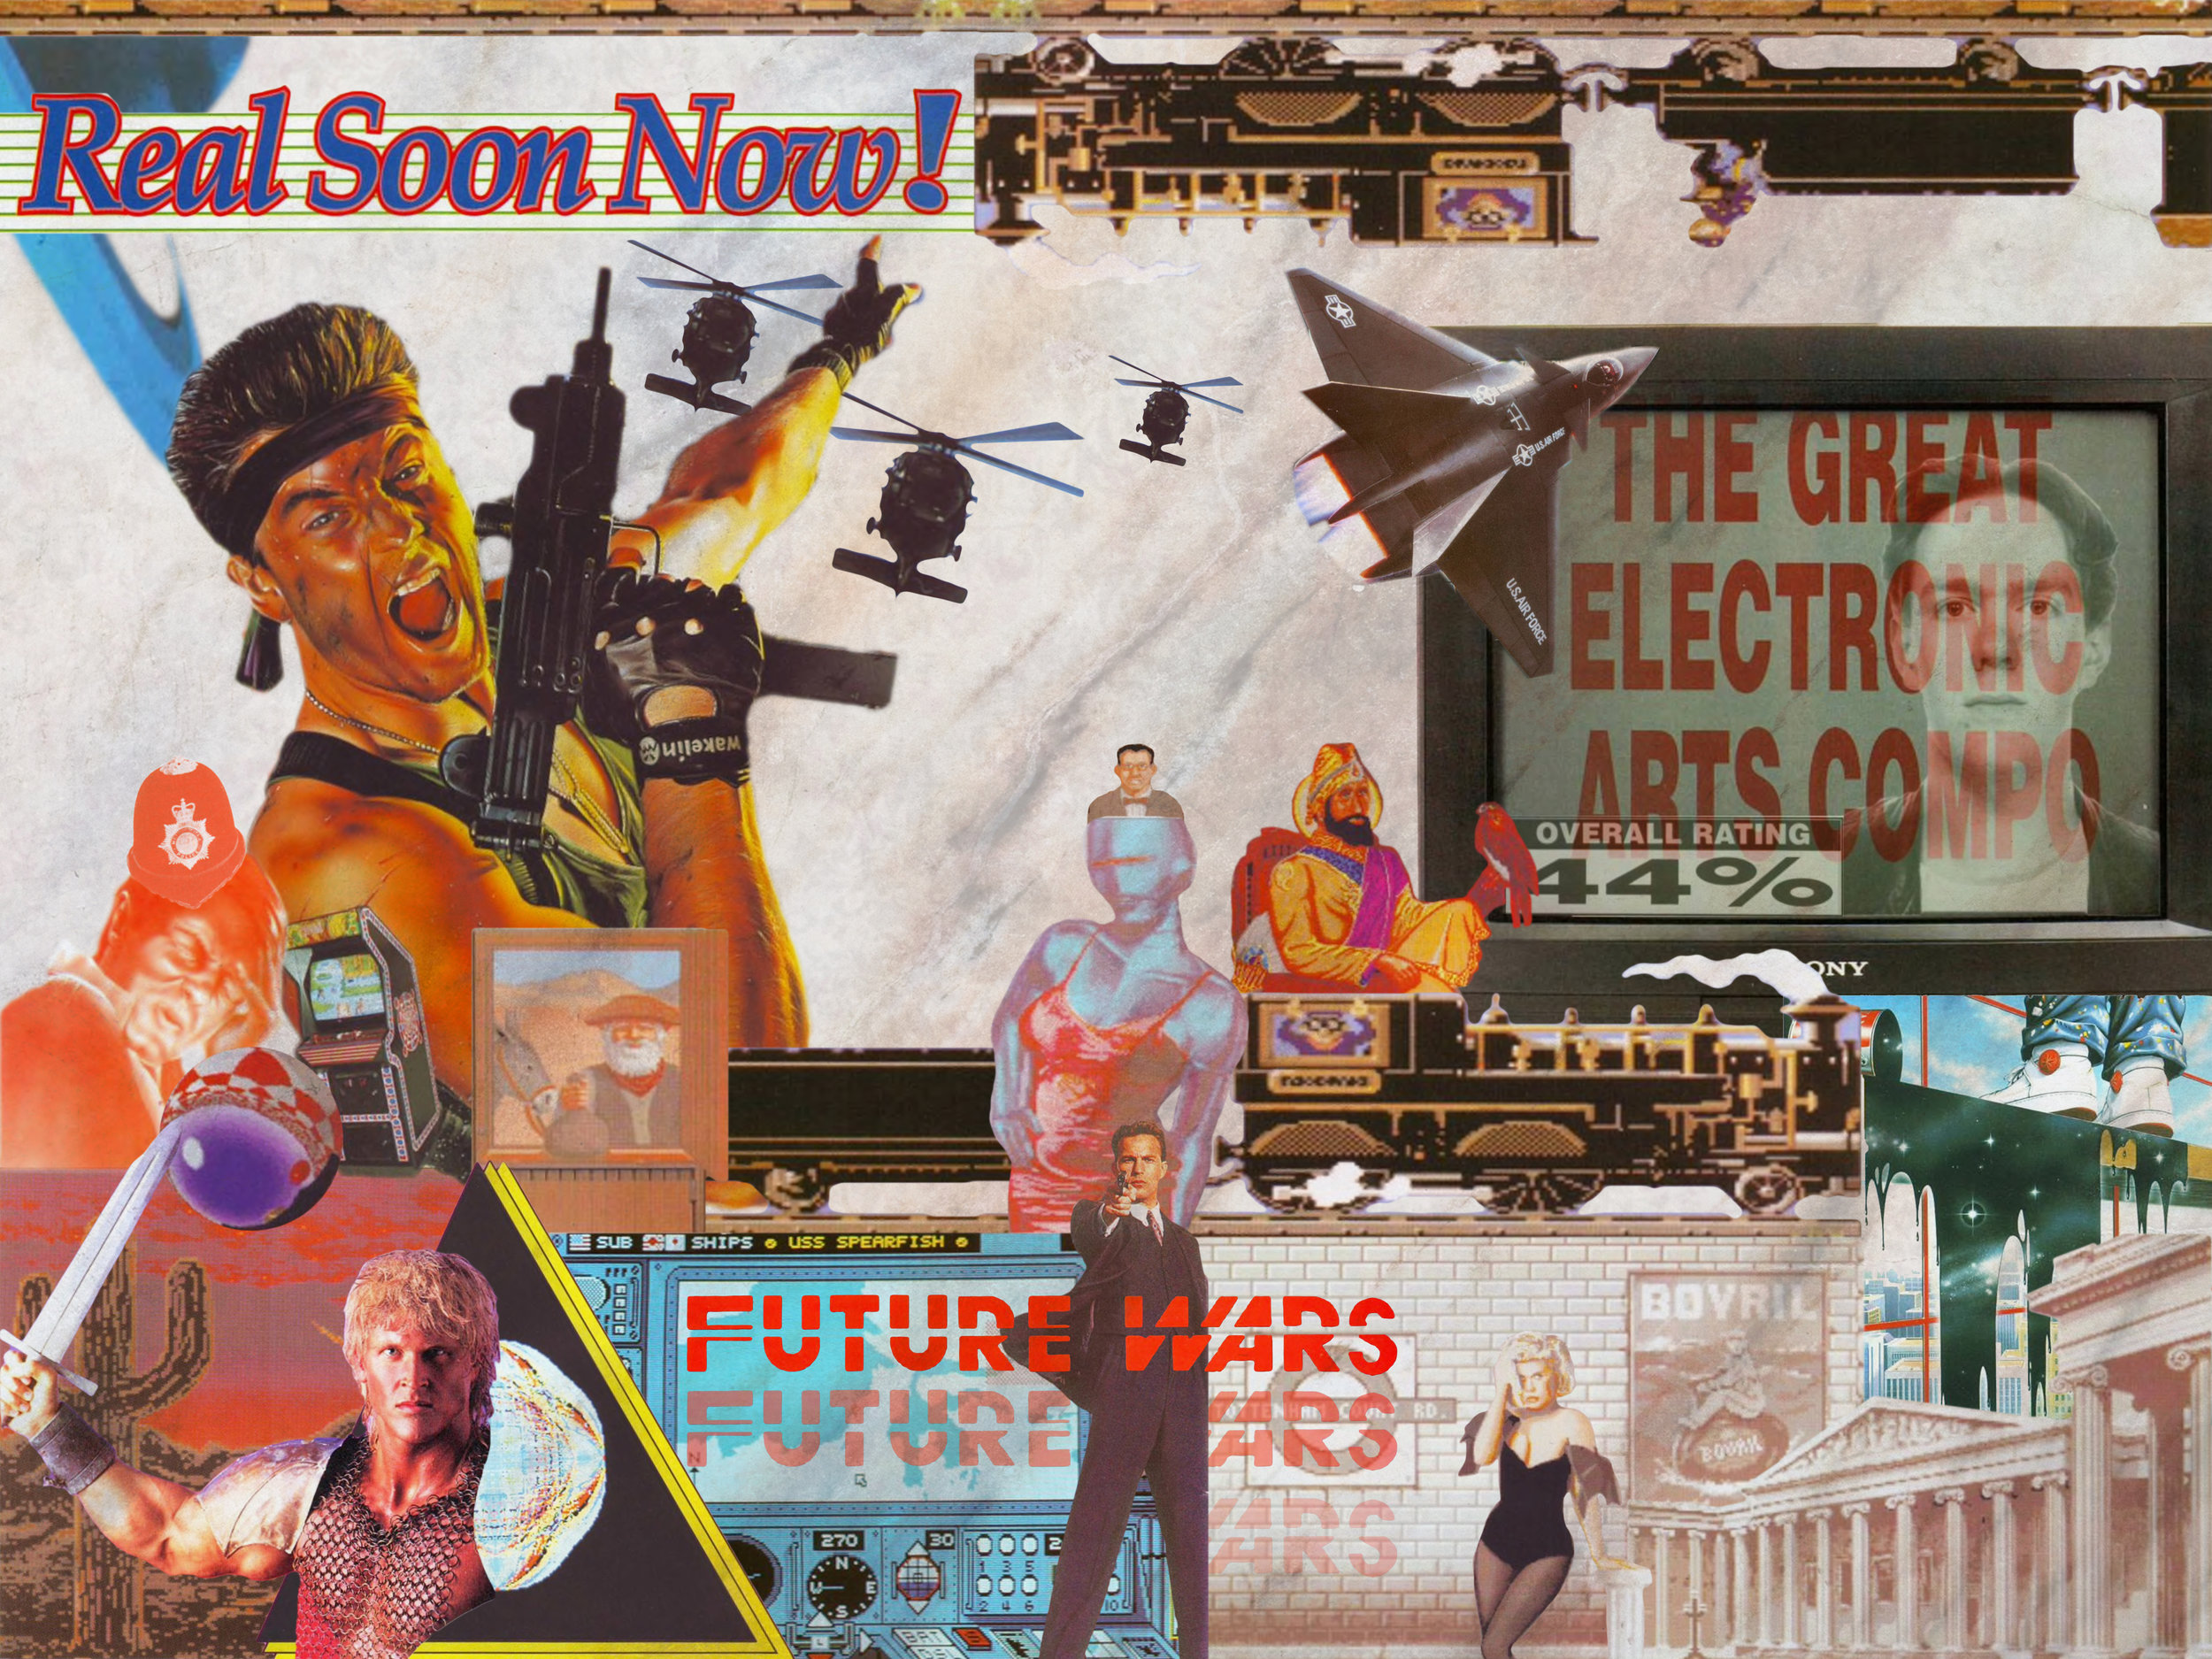 REAL-SOON-NOW-DIGITAL-COLLAGE.jpg